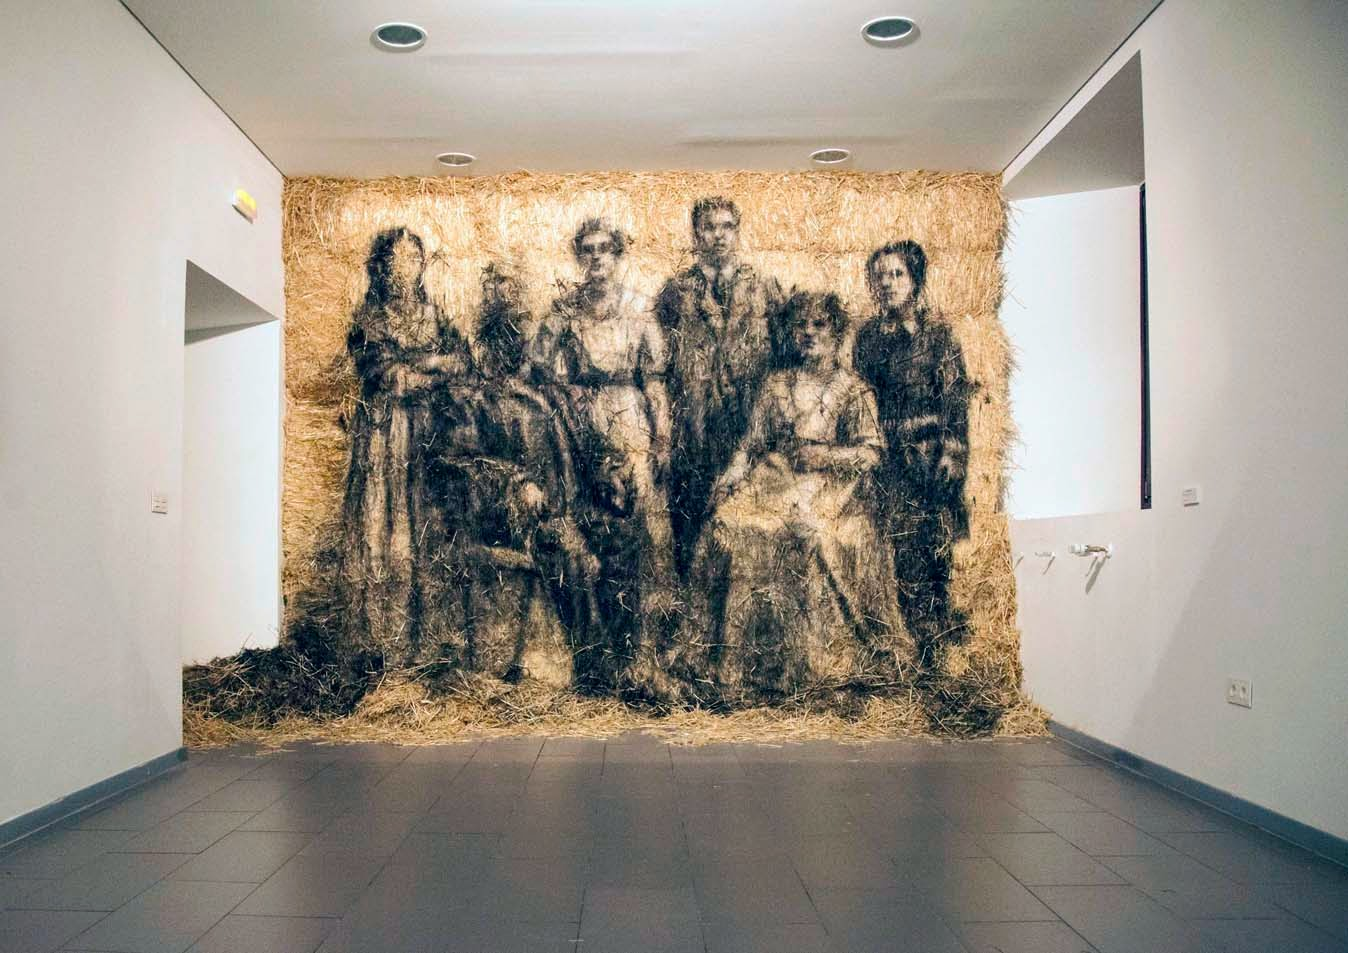 New Indoor Installation On Window and Hay Stacks by Spanish Artist Borondo in Madrid, Spain. 1